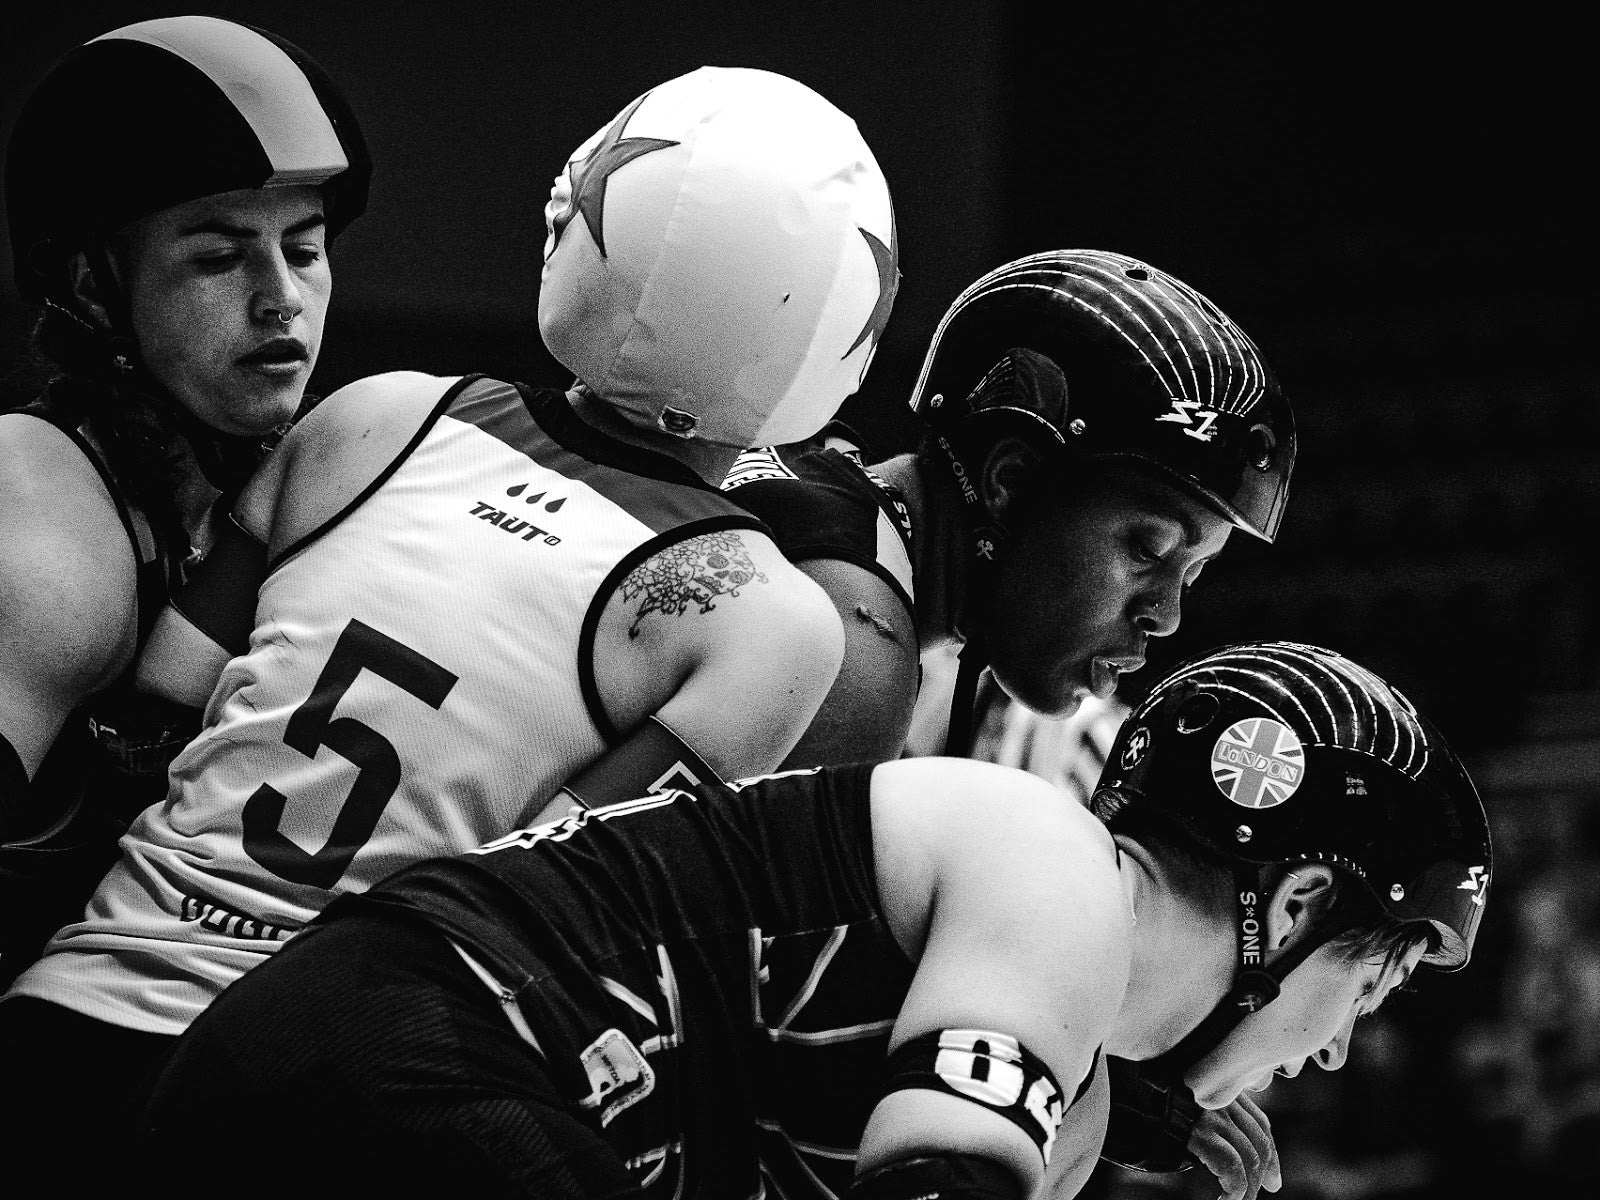 The beauty of great composition: Swaffield, jammer for Rainy City Roller Derby caught in a London Roller Derby 3-wall and pushing to escape. A moment that radiates calmness and shows the extreme concentration on the faces of the blockers with a framing indicating the direction of the game. London Roller Derby vs Rainy City Roller Derby at WFTDA Playoffs in Malmö (Sweden), 2017. ©Anja Wettergren